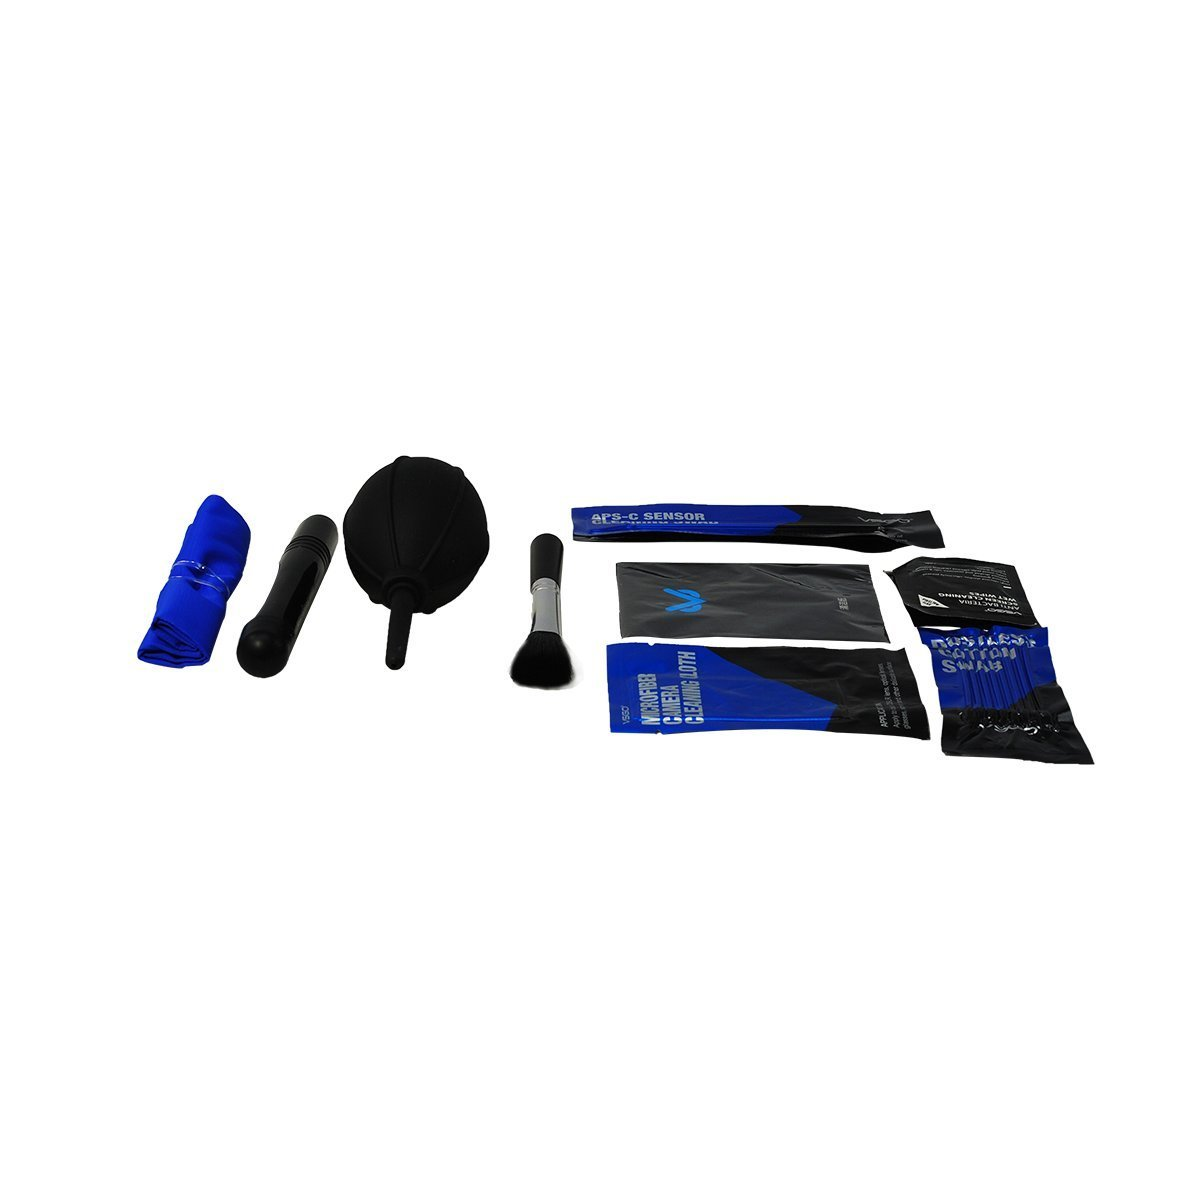 BoliOptics Camera Cleaning Kit Essential Package for DSLR and Sensitive Electronics: APS-C Sensor and Cotton Swab, Lens Pen, Lens Brush, Wet Wipes, Lens Cleaning Paper, Microfiber Cloth, Air Blower